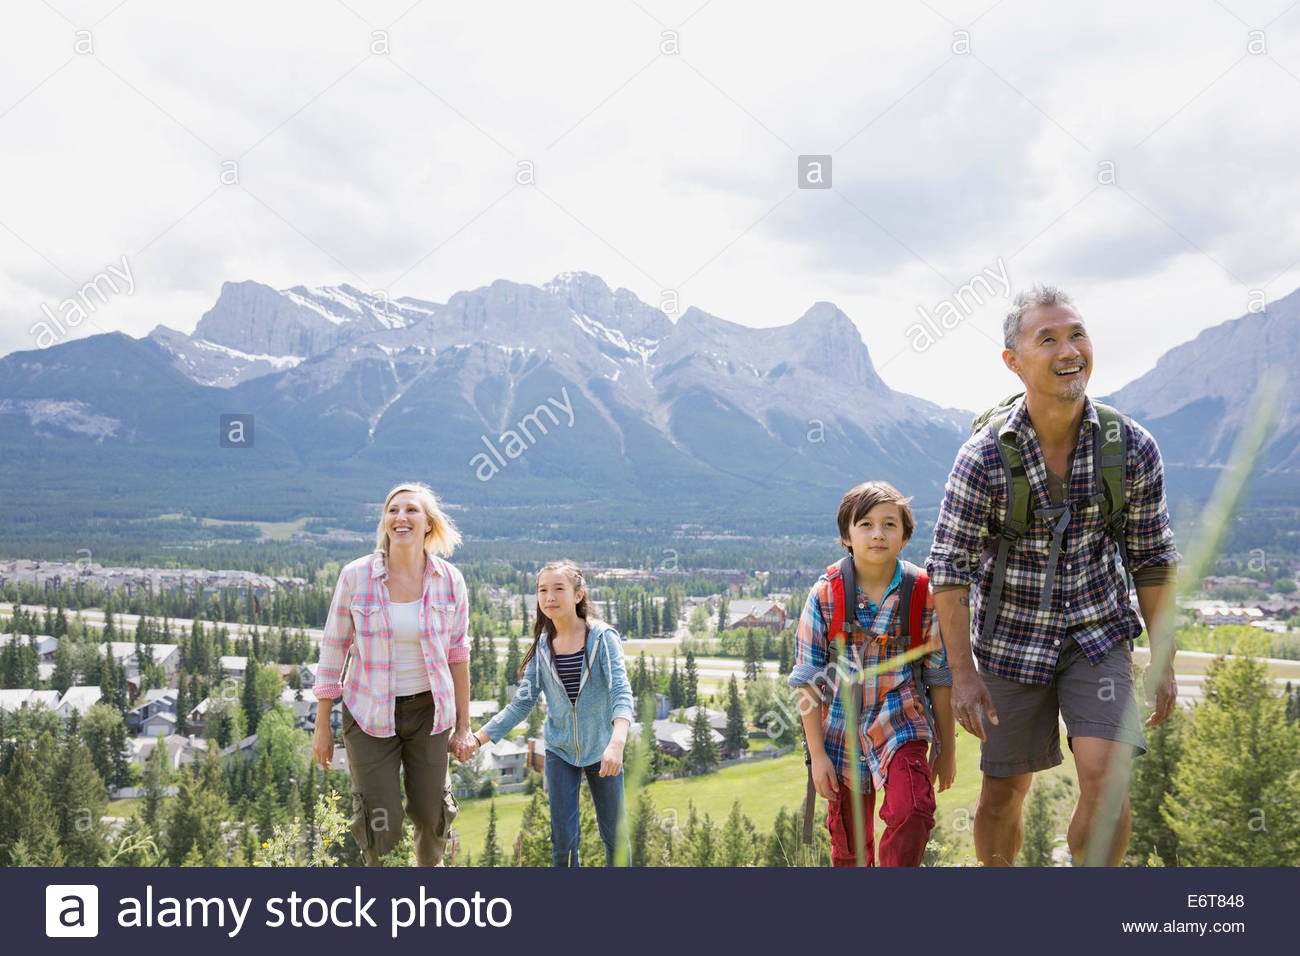 Randonnée familiale on rural hillside Photo Stock